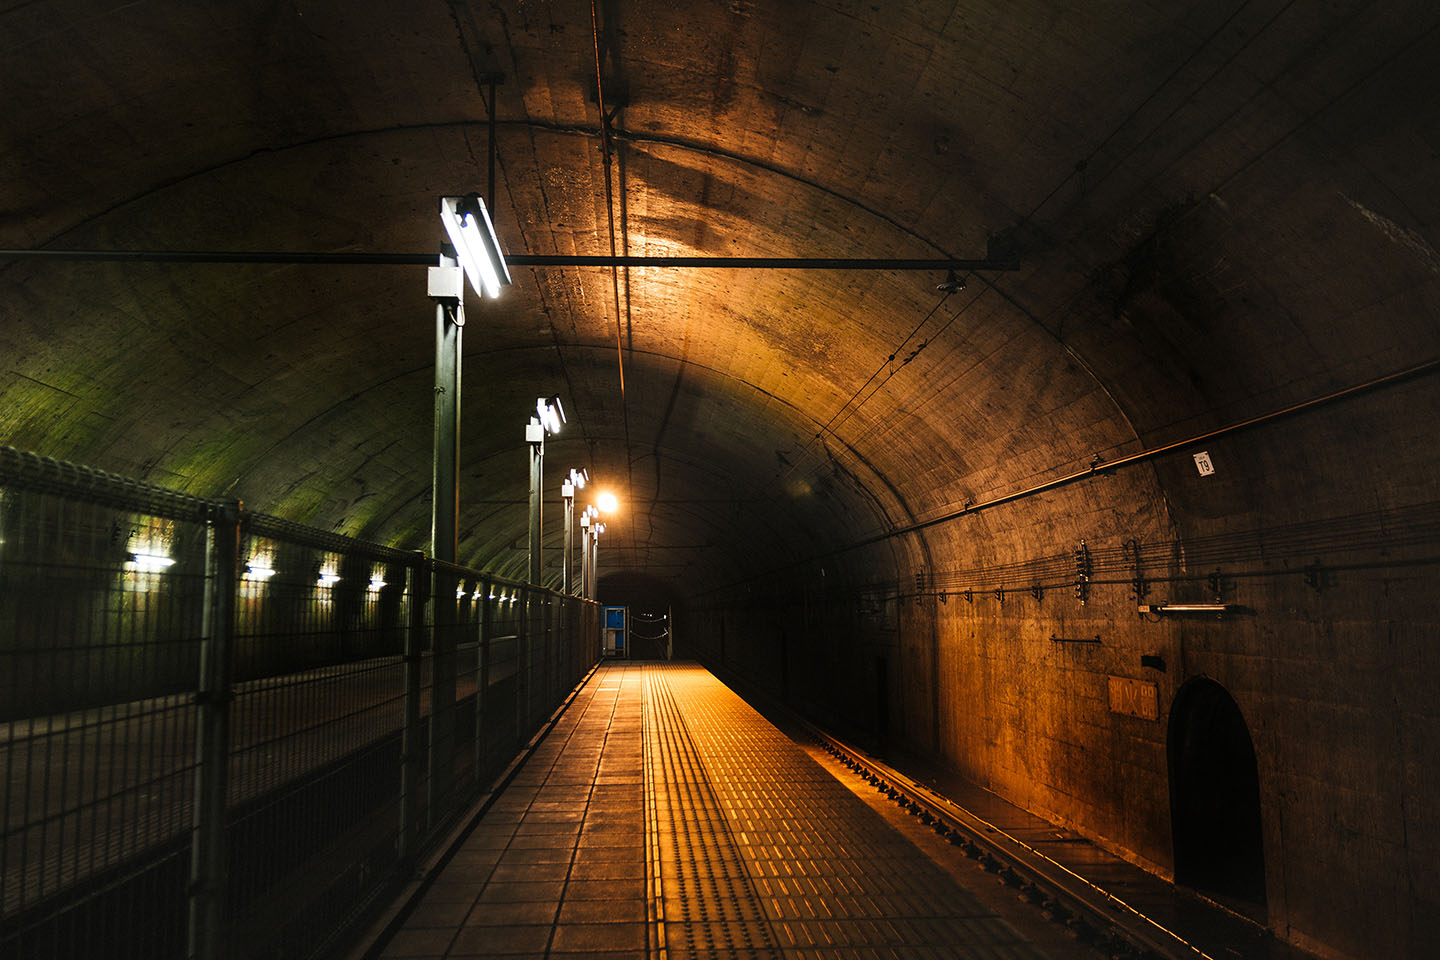 Doai Station: Deepest Mole Station in Japan